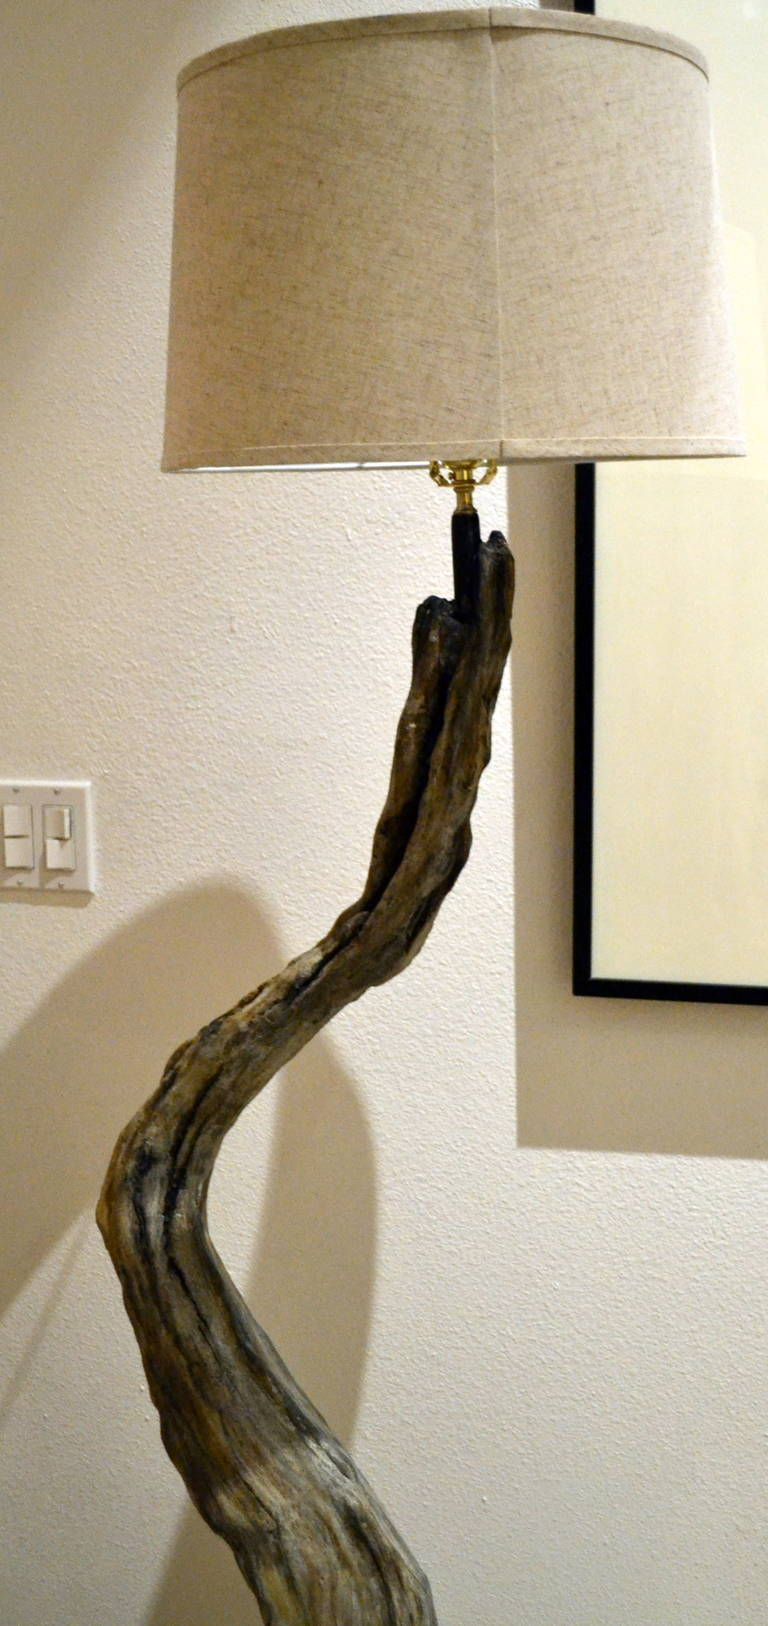 driftwood drift modish floor sculpture modeco products by reclaimed home wall lamp